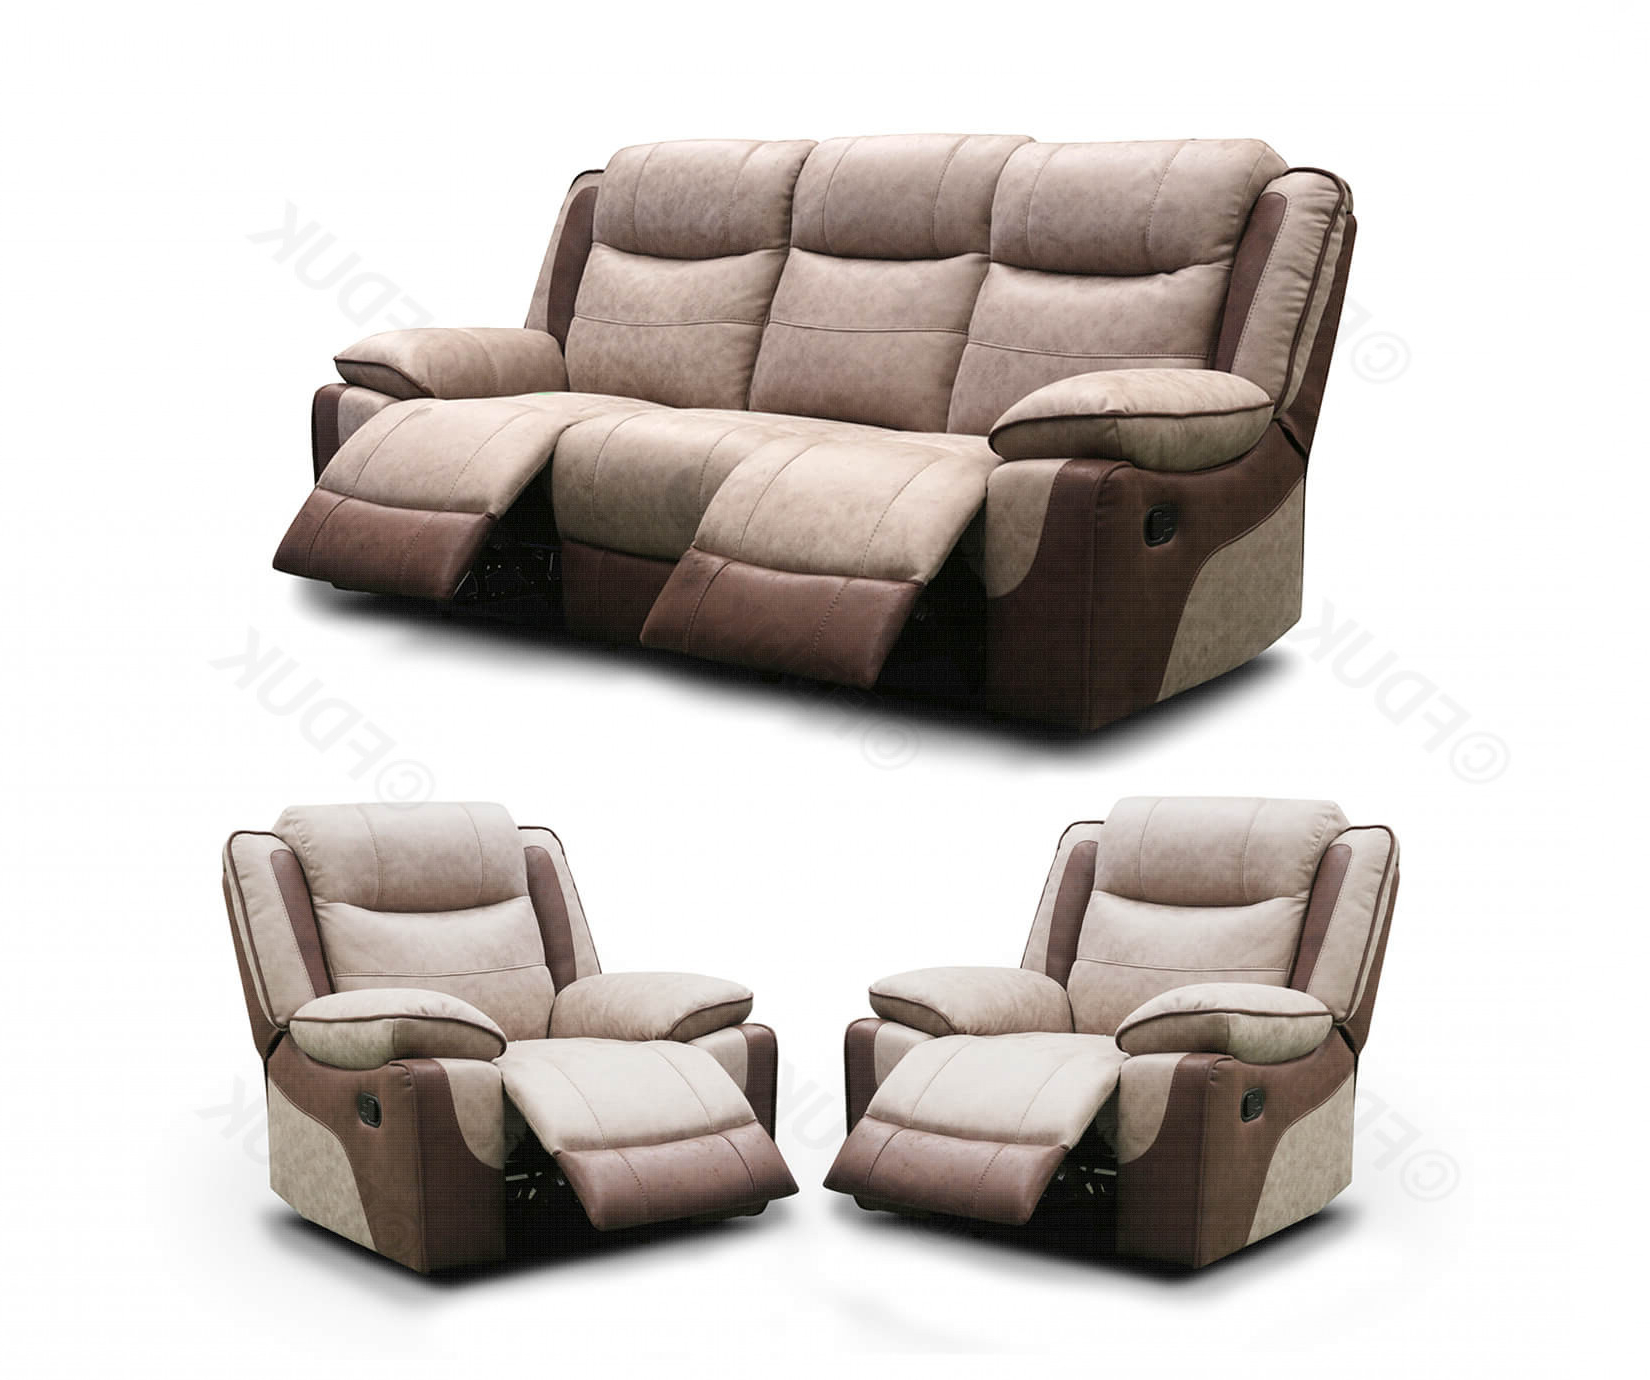 Paige 3+1+1 Manual Recliner Sofa Set (View 11 of 20)